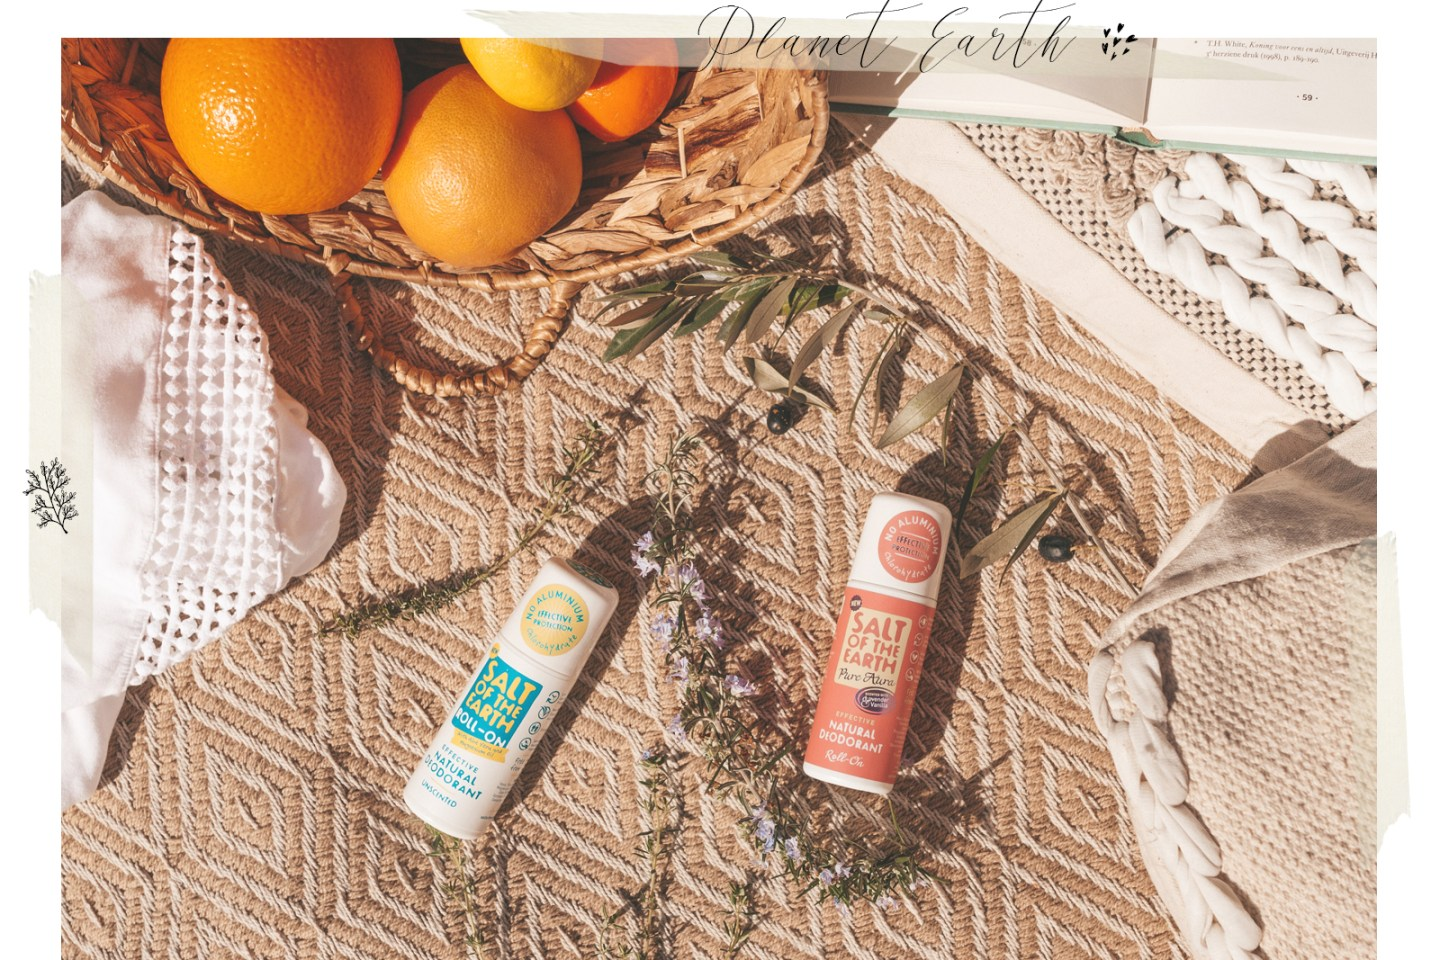 Salt of the Earth Roll-on deodorant Linda's wholesome life